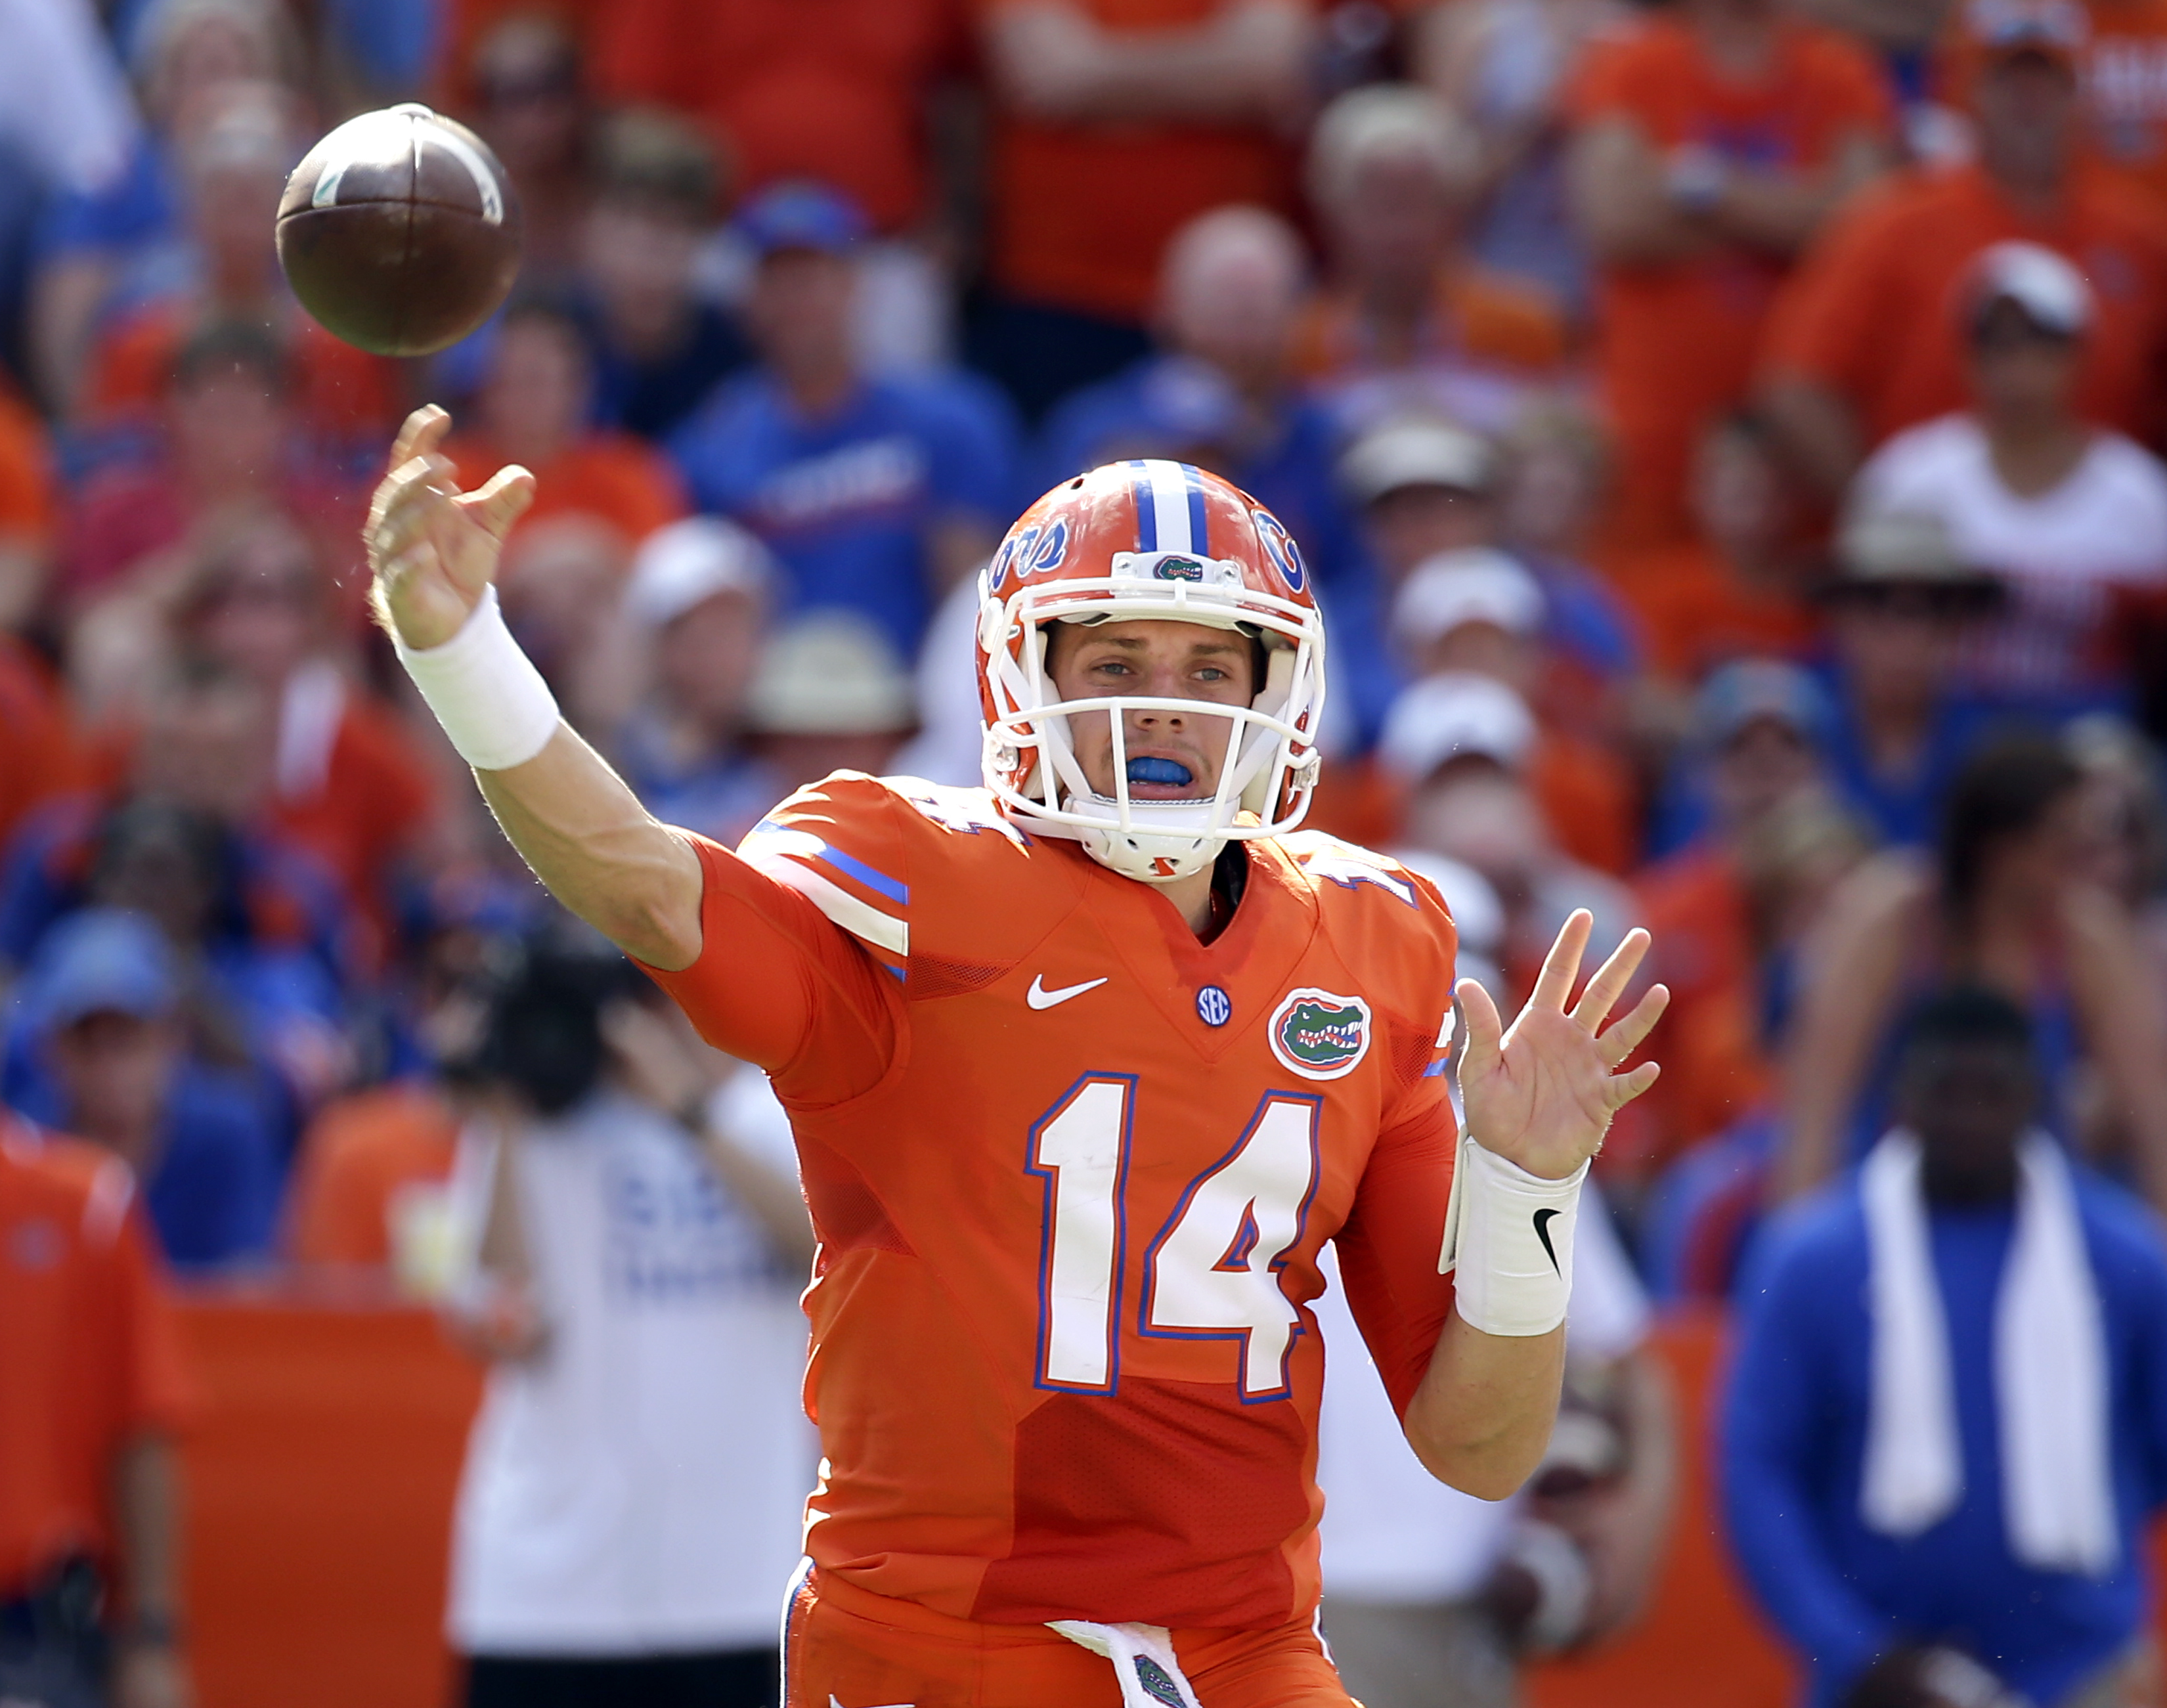 Florida quarterback Luke Del Rio throws a pass against Kentucky during the first half of an NCAA college football game, Saturday, Sept. 10, 2016, in Gainesville, Fla. (AP Photo/John Raoux)